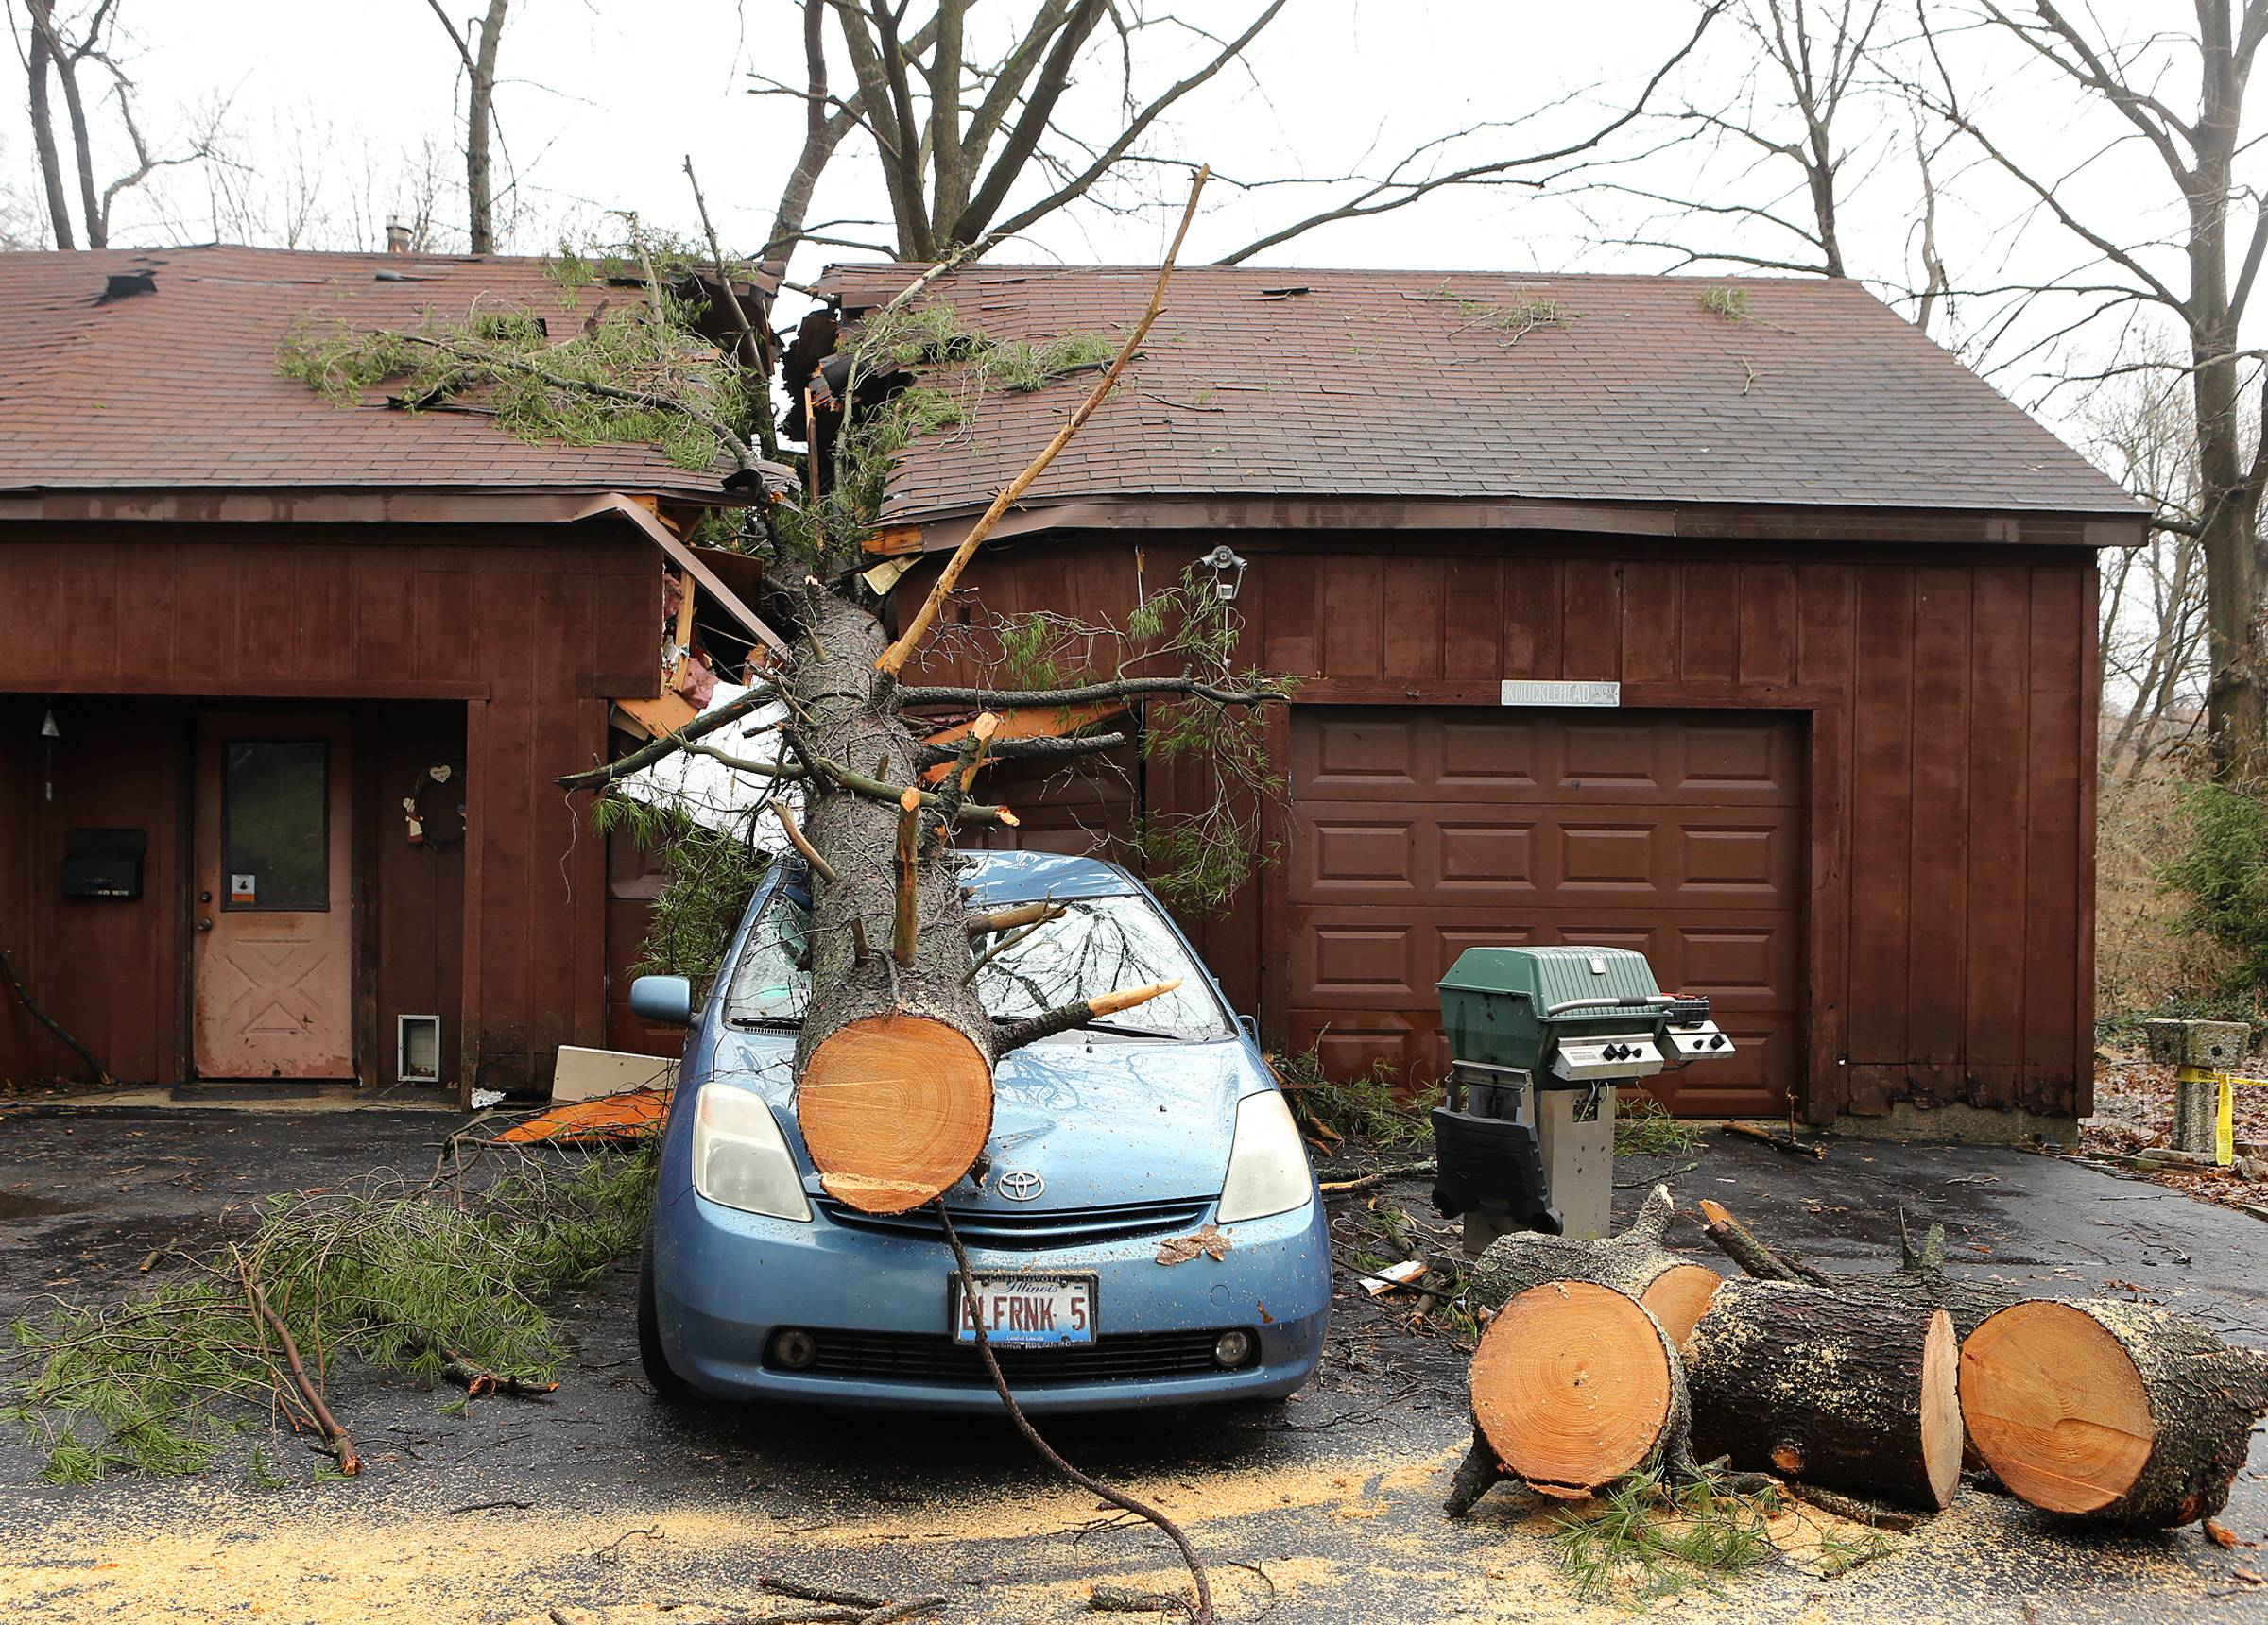 A strong storm sent a tree through this home and garage, landing on a car Thursday in Belleville, Ill, but the storm that swept across the St. Louis region caused no injuries or significant damage in the metropolitan area's Illinois suburbs.